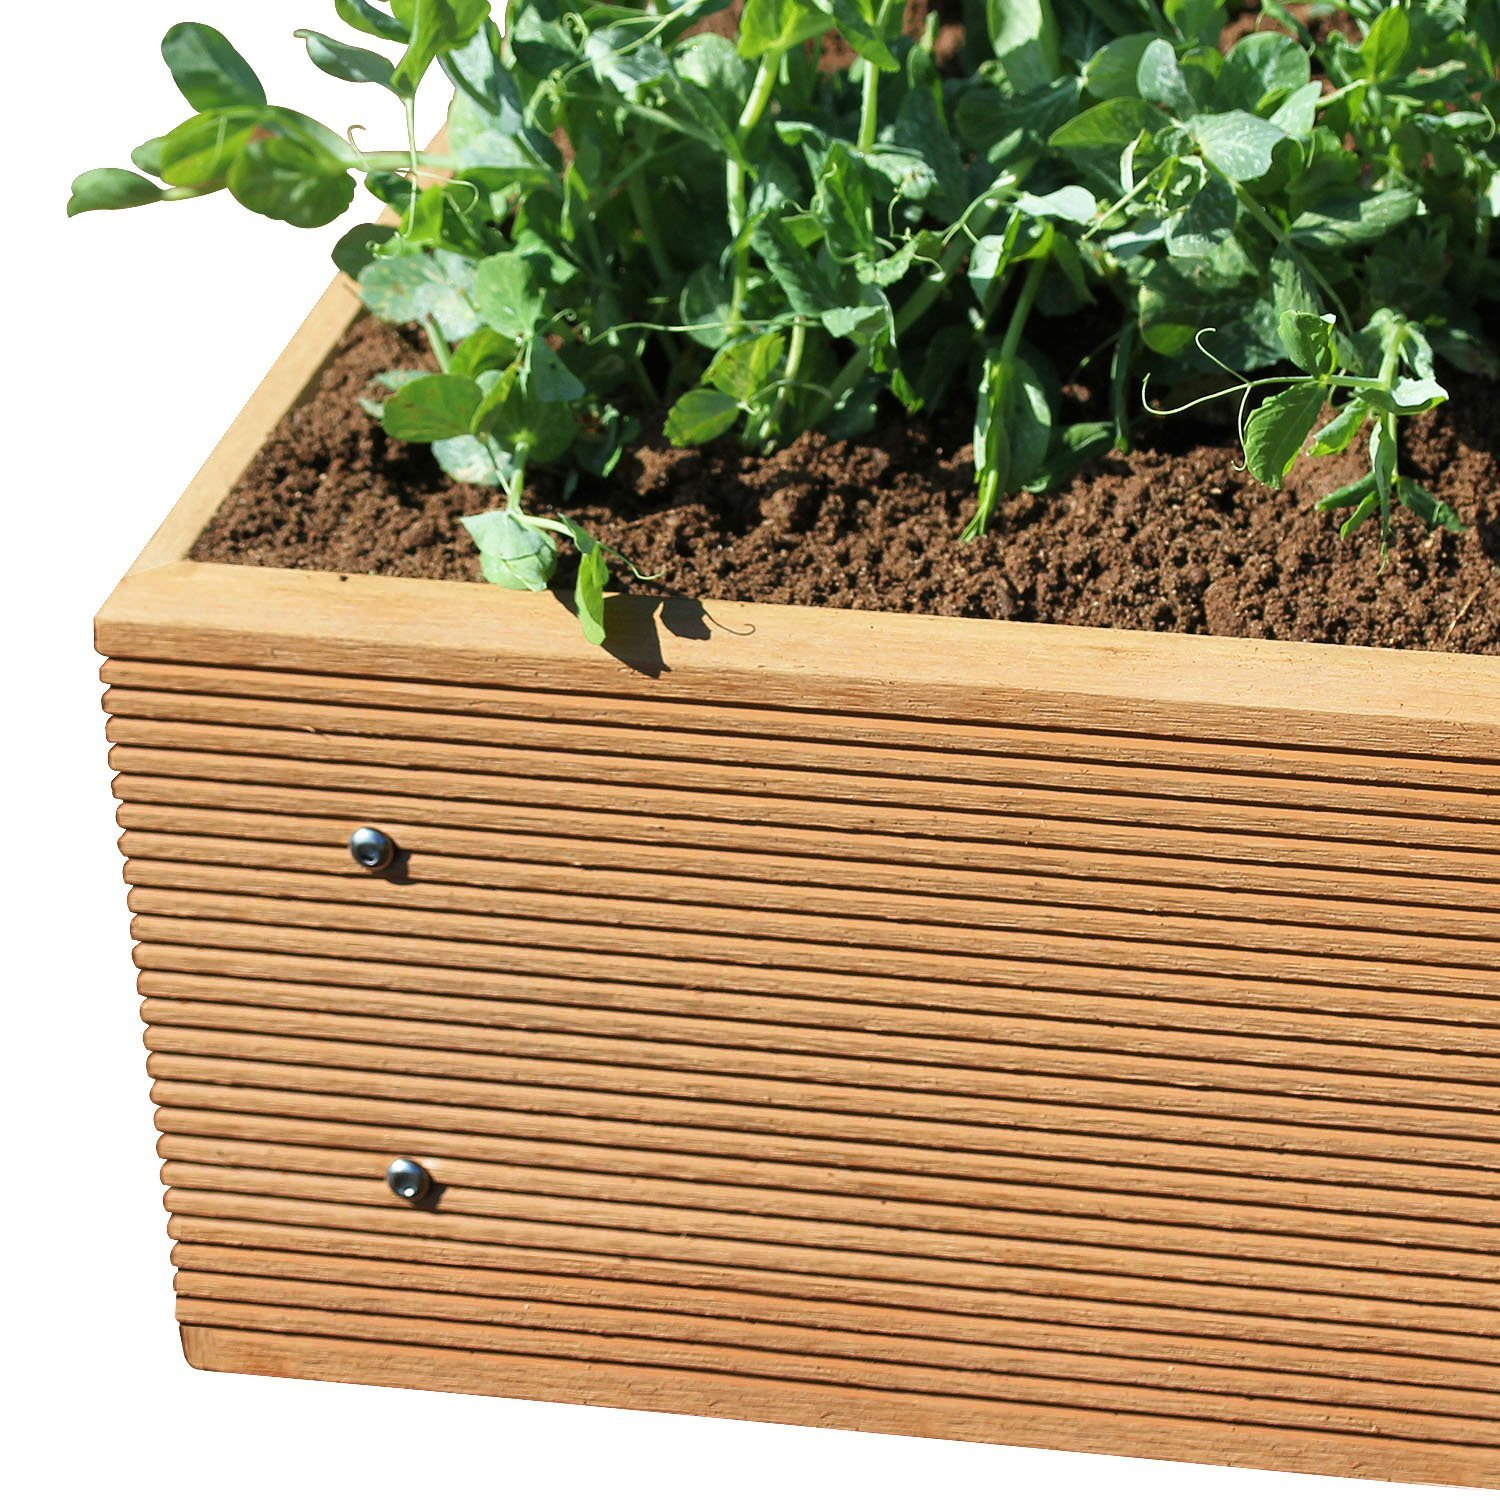 ECOgardener Premium Raised Bed Garden Planter Box 2' x 4' – The most beautiful elevated planter that will not crack, split, warp or break. Easy setup and maintenance free design. by ECOgardener